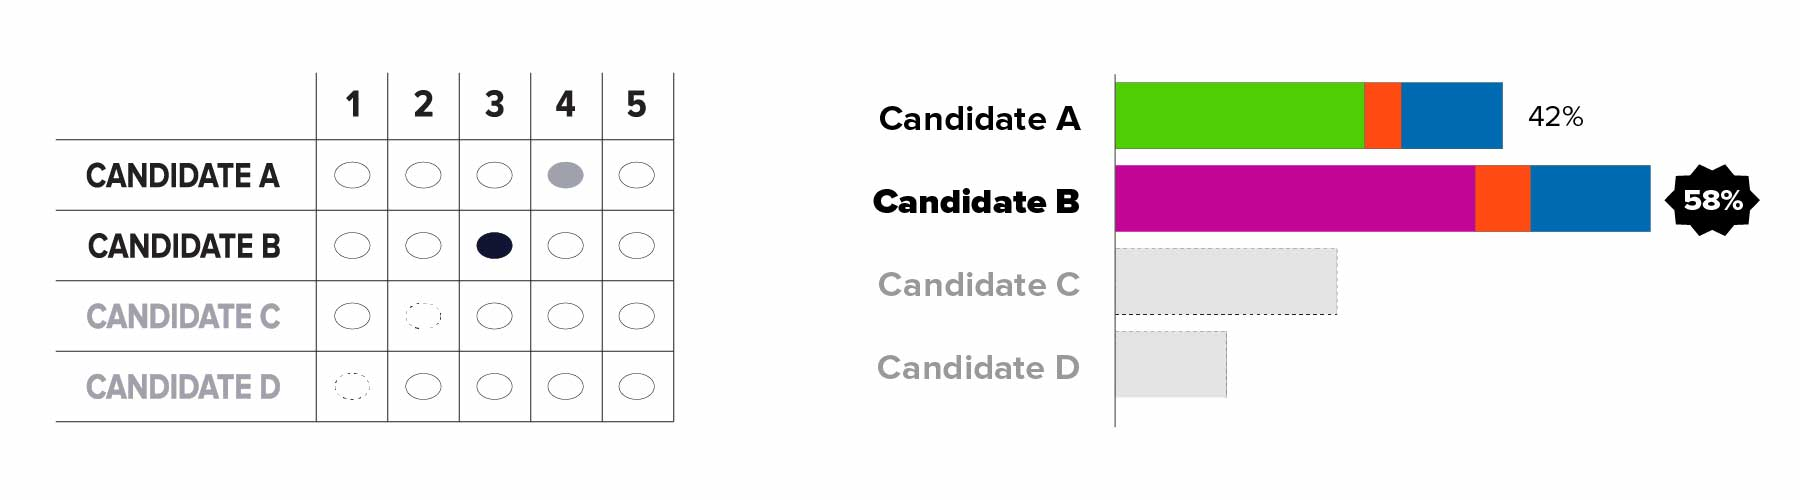 On left: A correctly marked RCV grid ballot where candidate A through D appears in rows and number 1 through 5 appears in columns. Candidate B is ranked 3 and Candidate A is ranked 4. Candidate C and Candidates D's names are grayed out because they were eliminated in previous rounds. The oval for Candidate B who is ranked 3 is darker than the other ovals. On right: Bar chart displaying the results of vote after Round 2. Candidate A is shown in green and has 27 percent of first-choice votes plus 4 percent of Candidate D's orange votes to total 31 percent. Candidate B is shown in purple and has 39 percent of first-choice votes plus 6 percent of Candidate D's orange votes to total 45 percent. Candidate C's entire bar and name is grayed out, and arrows point from Candidate C to the other two remaining candidate's bars. The ballots for the 24 percent of voters whose top choice in this round was Candidate C will move to the next-highest ranked candidate on their ballots. Candidate D's bar and name is grayed out because they are no longer active.